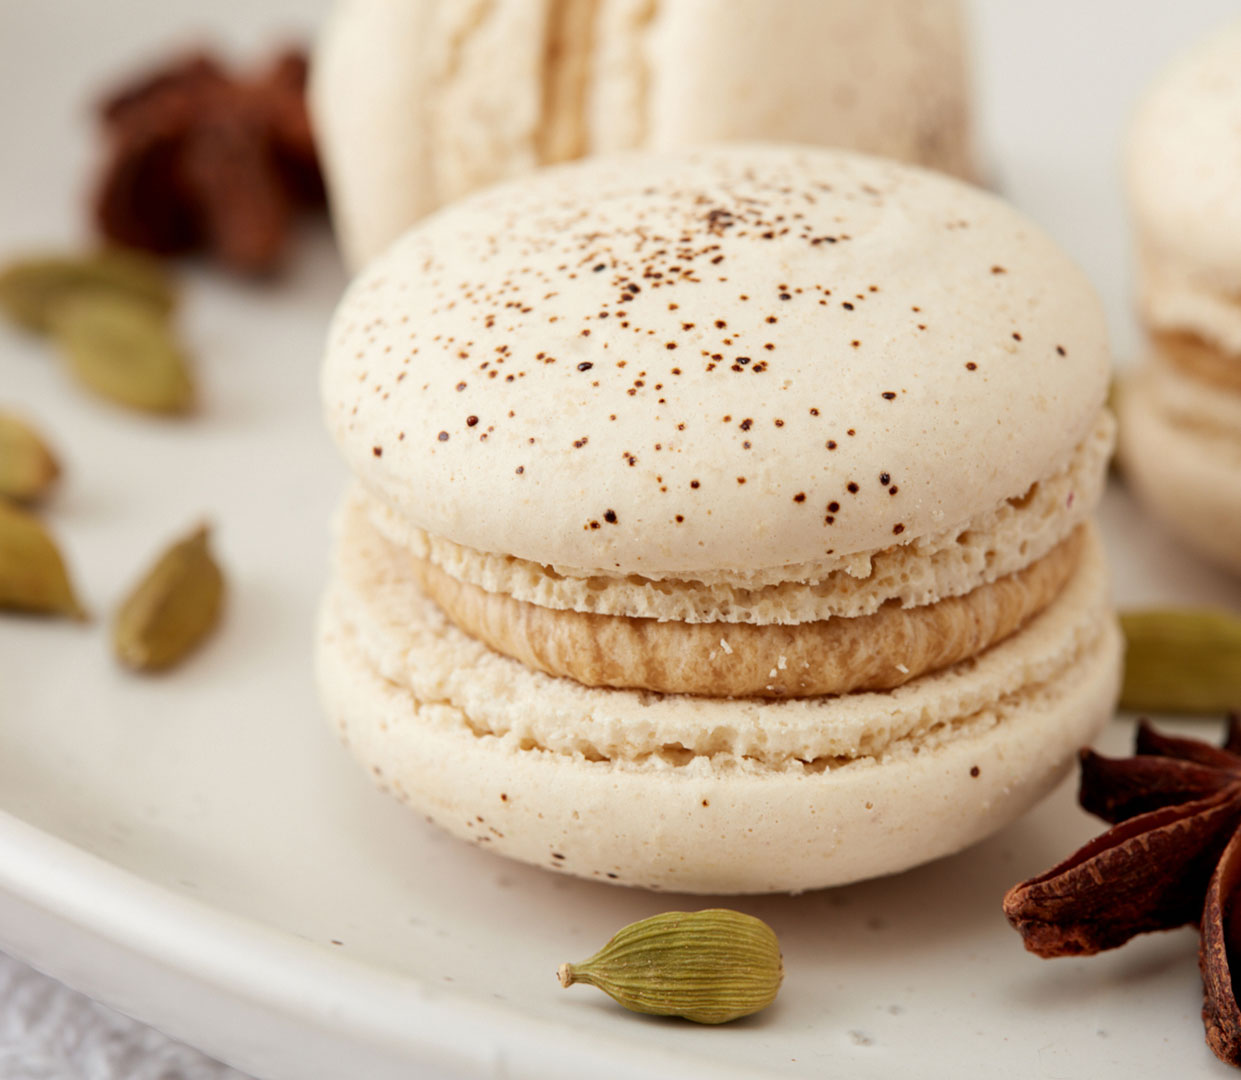 Macaroons photographed by professional food and beverage photographer Kate Benson.